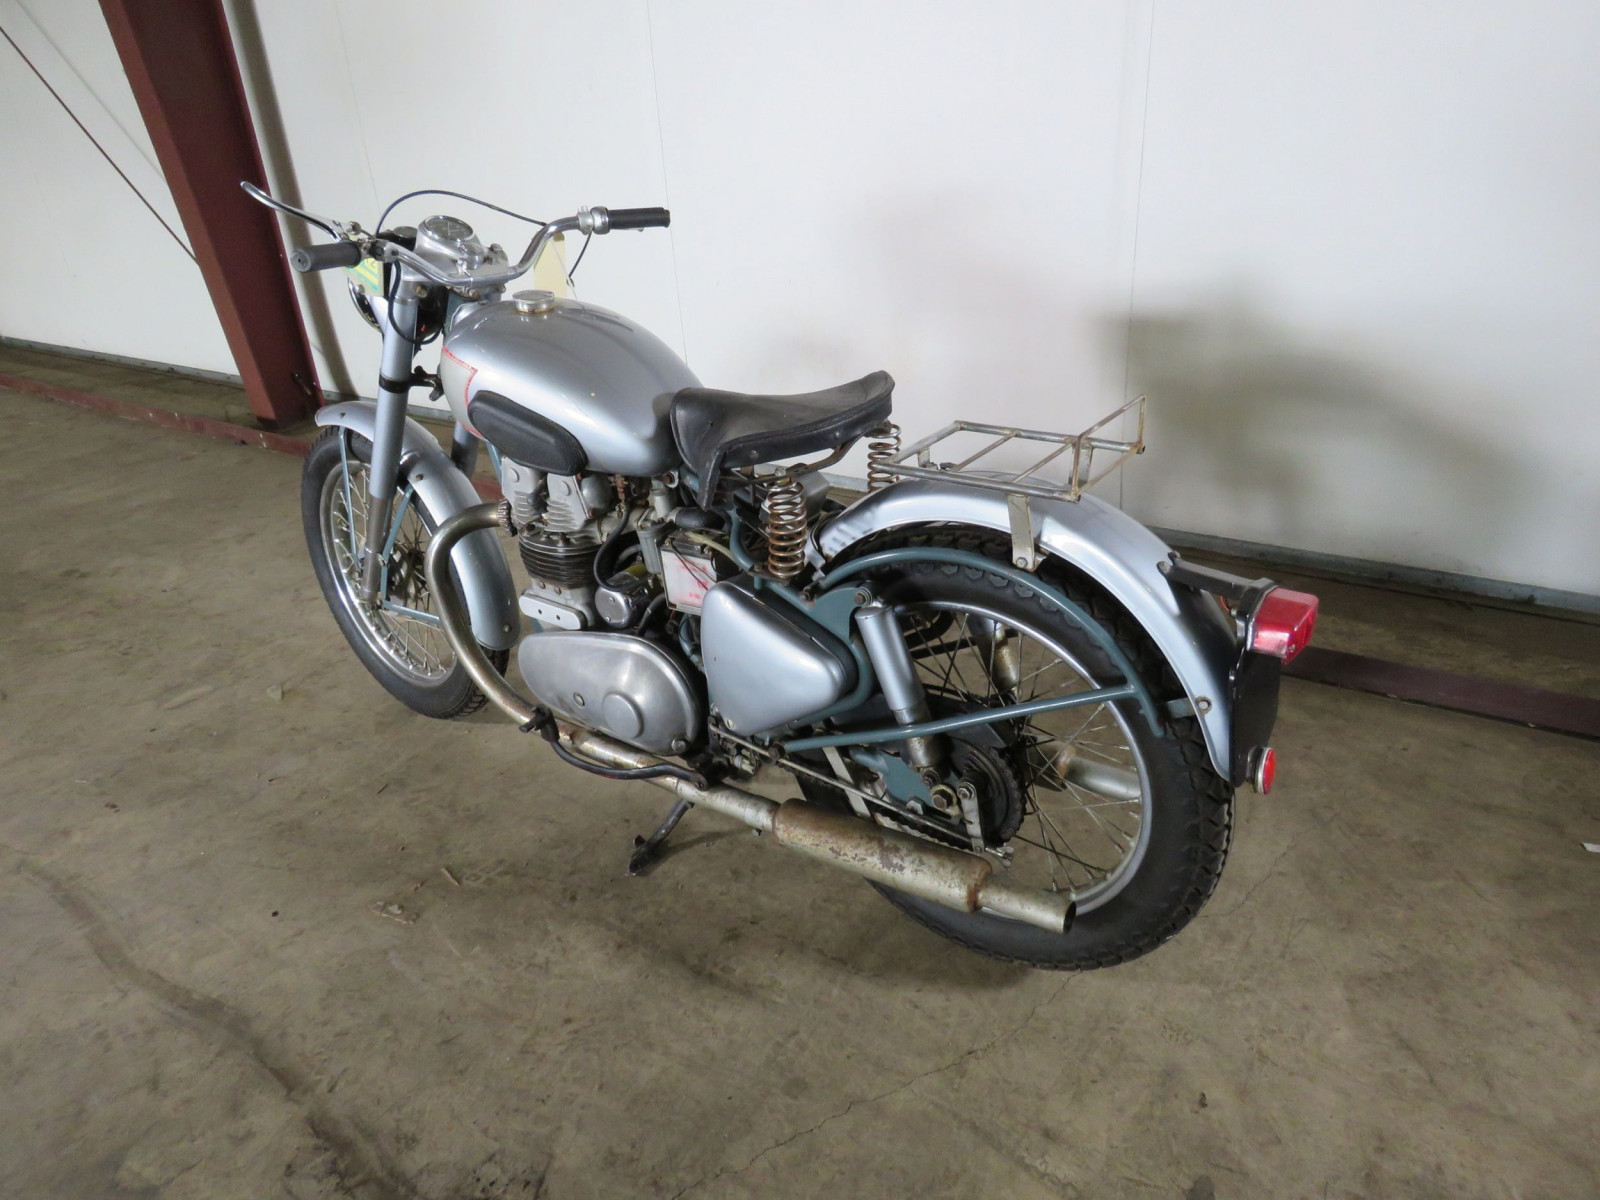 1952 Royal Enfield 500 Twin Motorcycle - Image 1